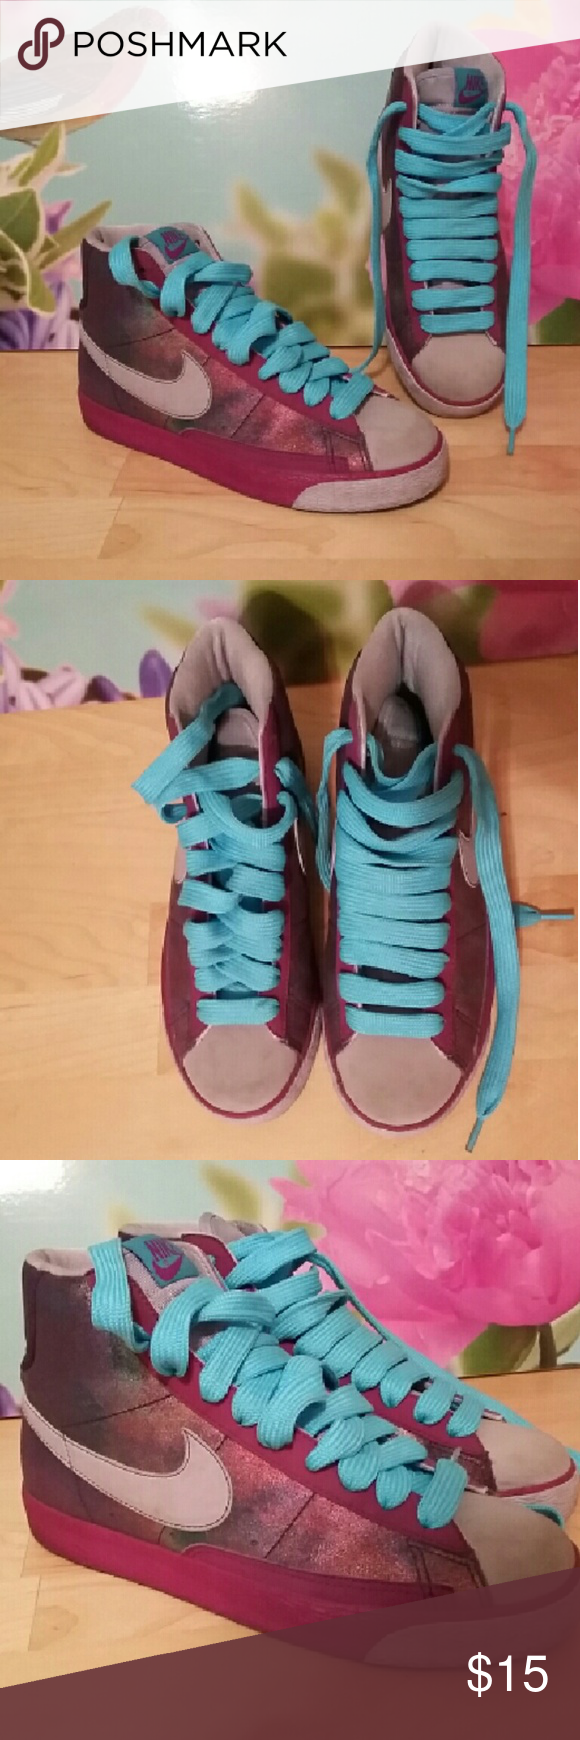 NIKE cute purple sneakers sz.7.5/38.5 NIKE cute purple sneakers sz.7.5/38.5...very good used condition...laces need to be matched up either way...show slight wear on front. Outer sole measure 10 1/4 inches in length Nike Shoes Sneakers